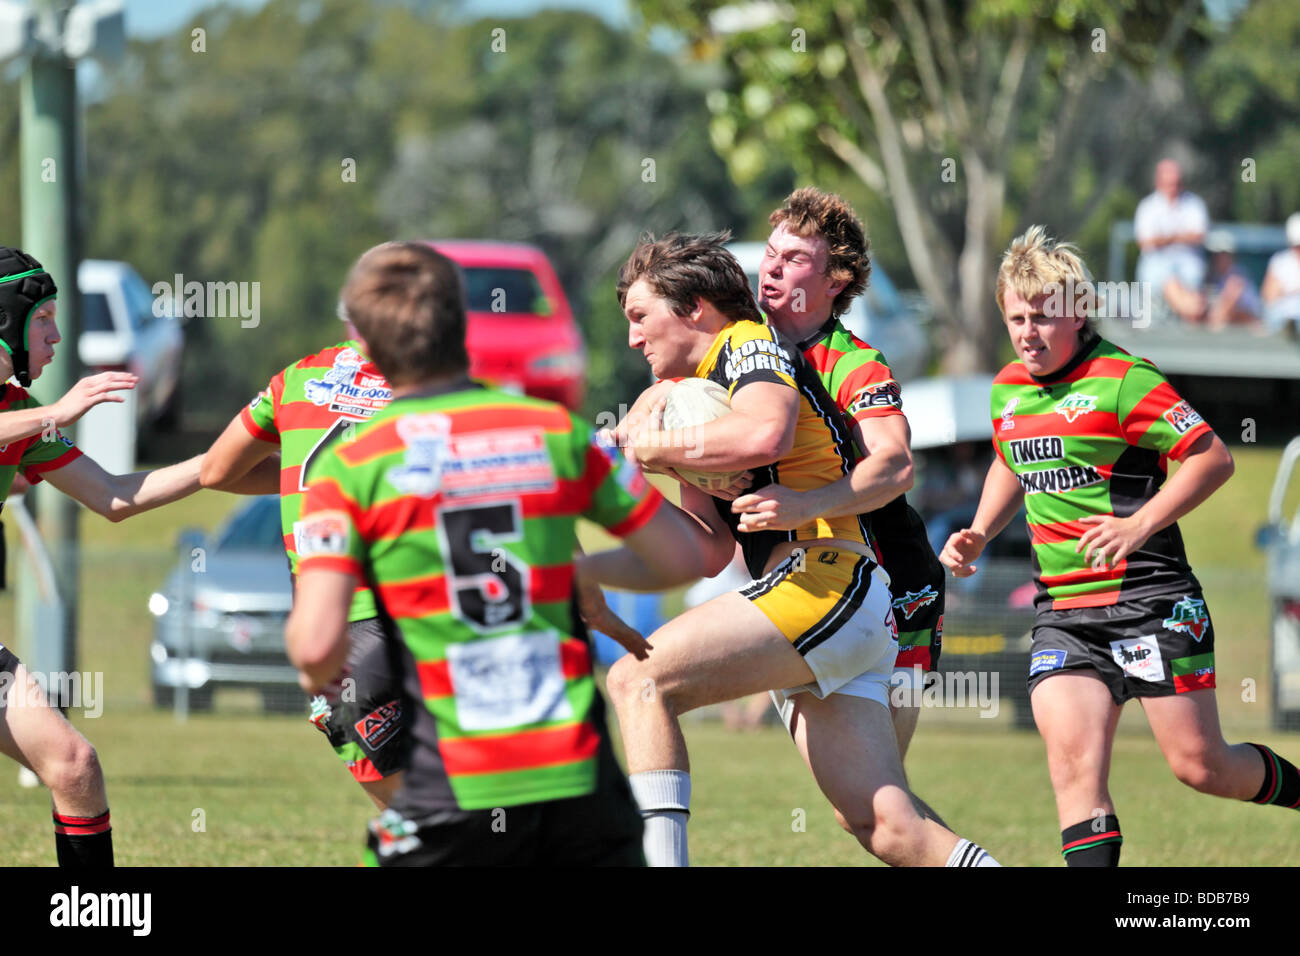 Teams of Australian rugby league playing a match showing the elements of a scrum running kicking and tackle - Stock Image